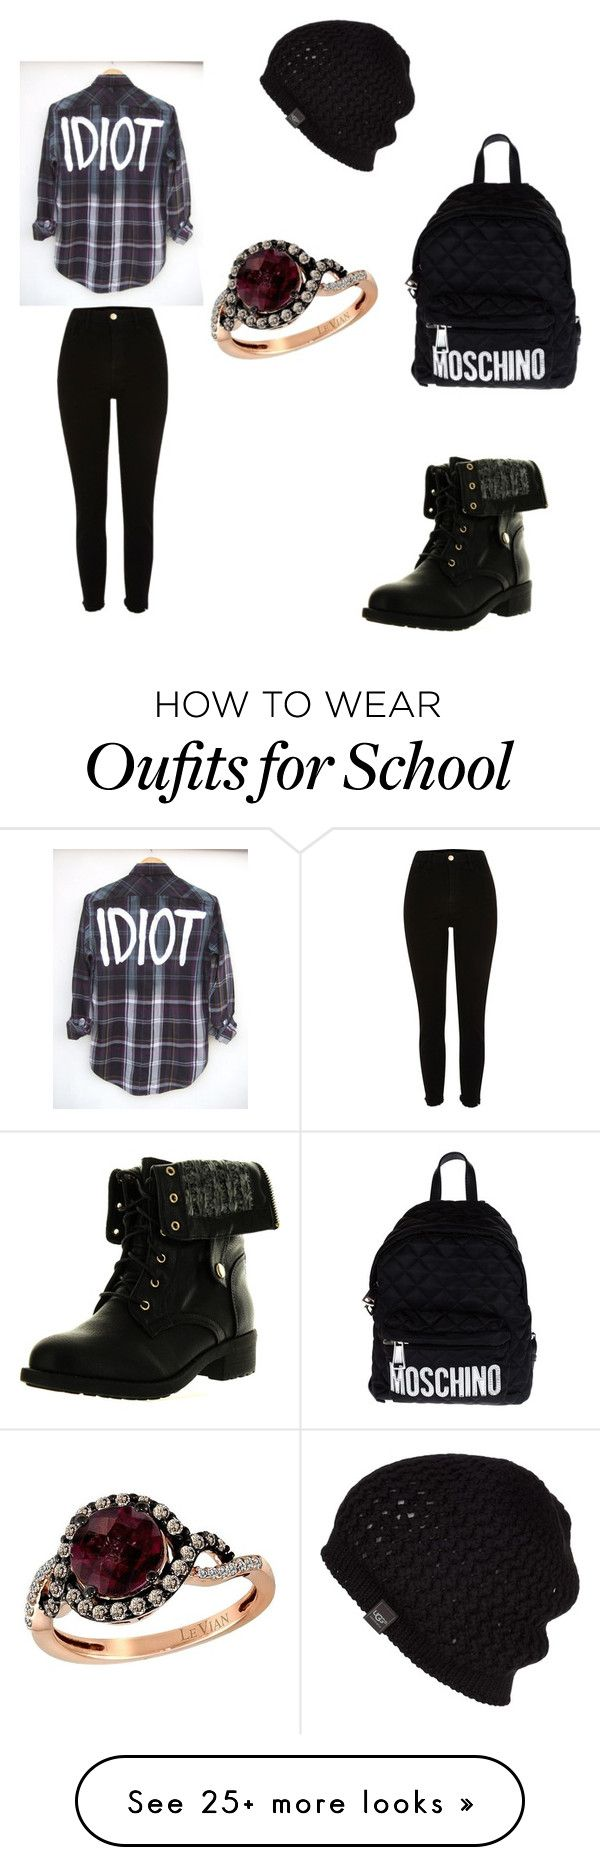 """""""School things 4"""" by starrjames on Polyvore featuring Refresh, UGG Australia, Moschino and LE VIAN"""